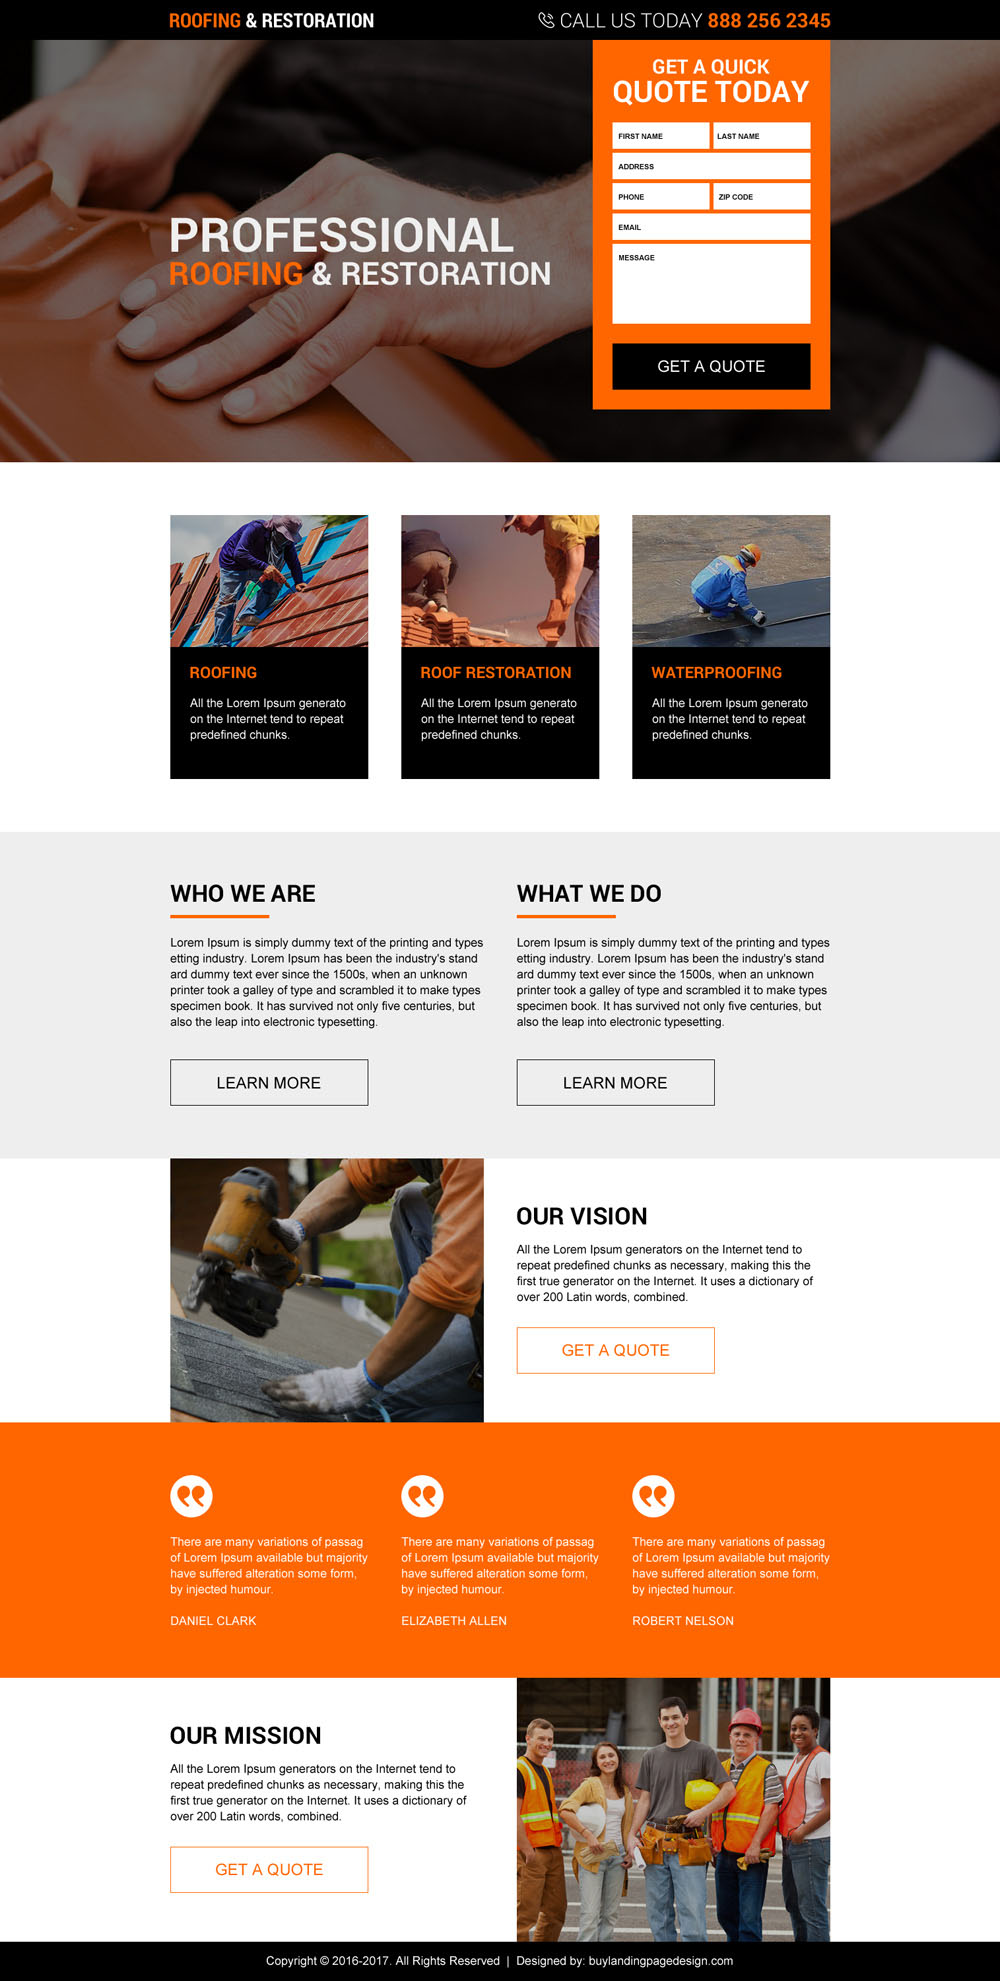 Professional roofing and restoration services responsive landing page